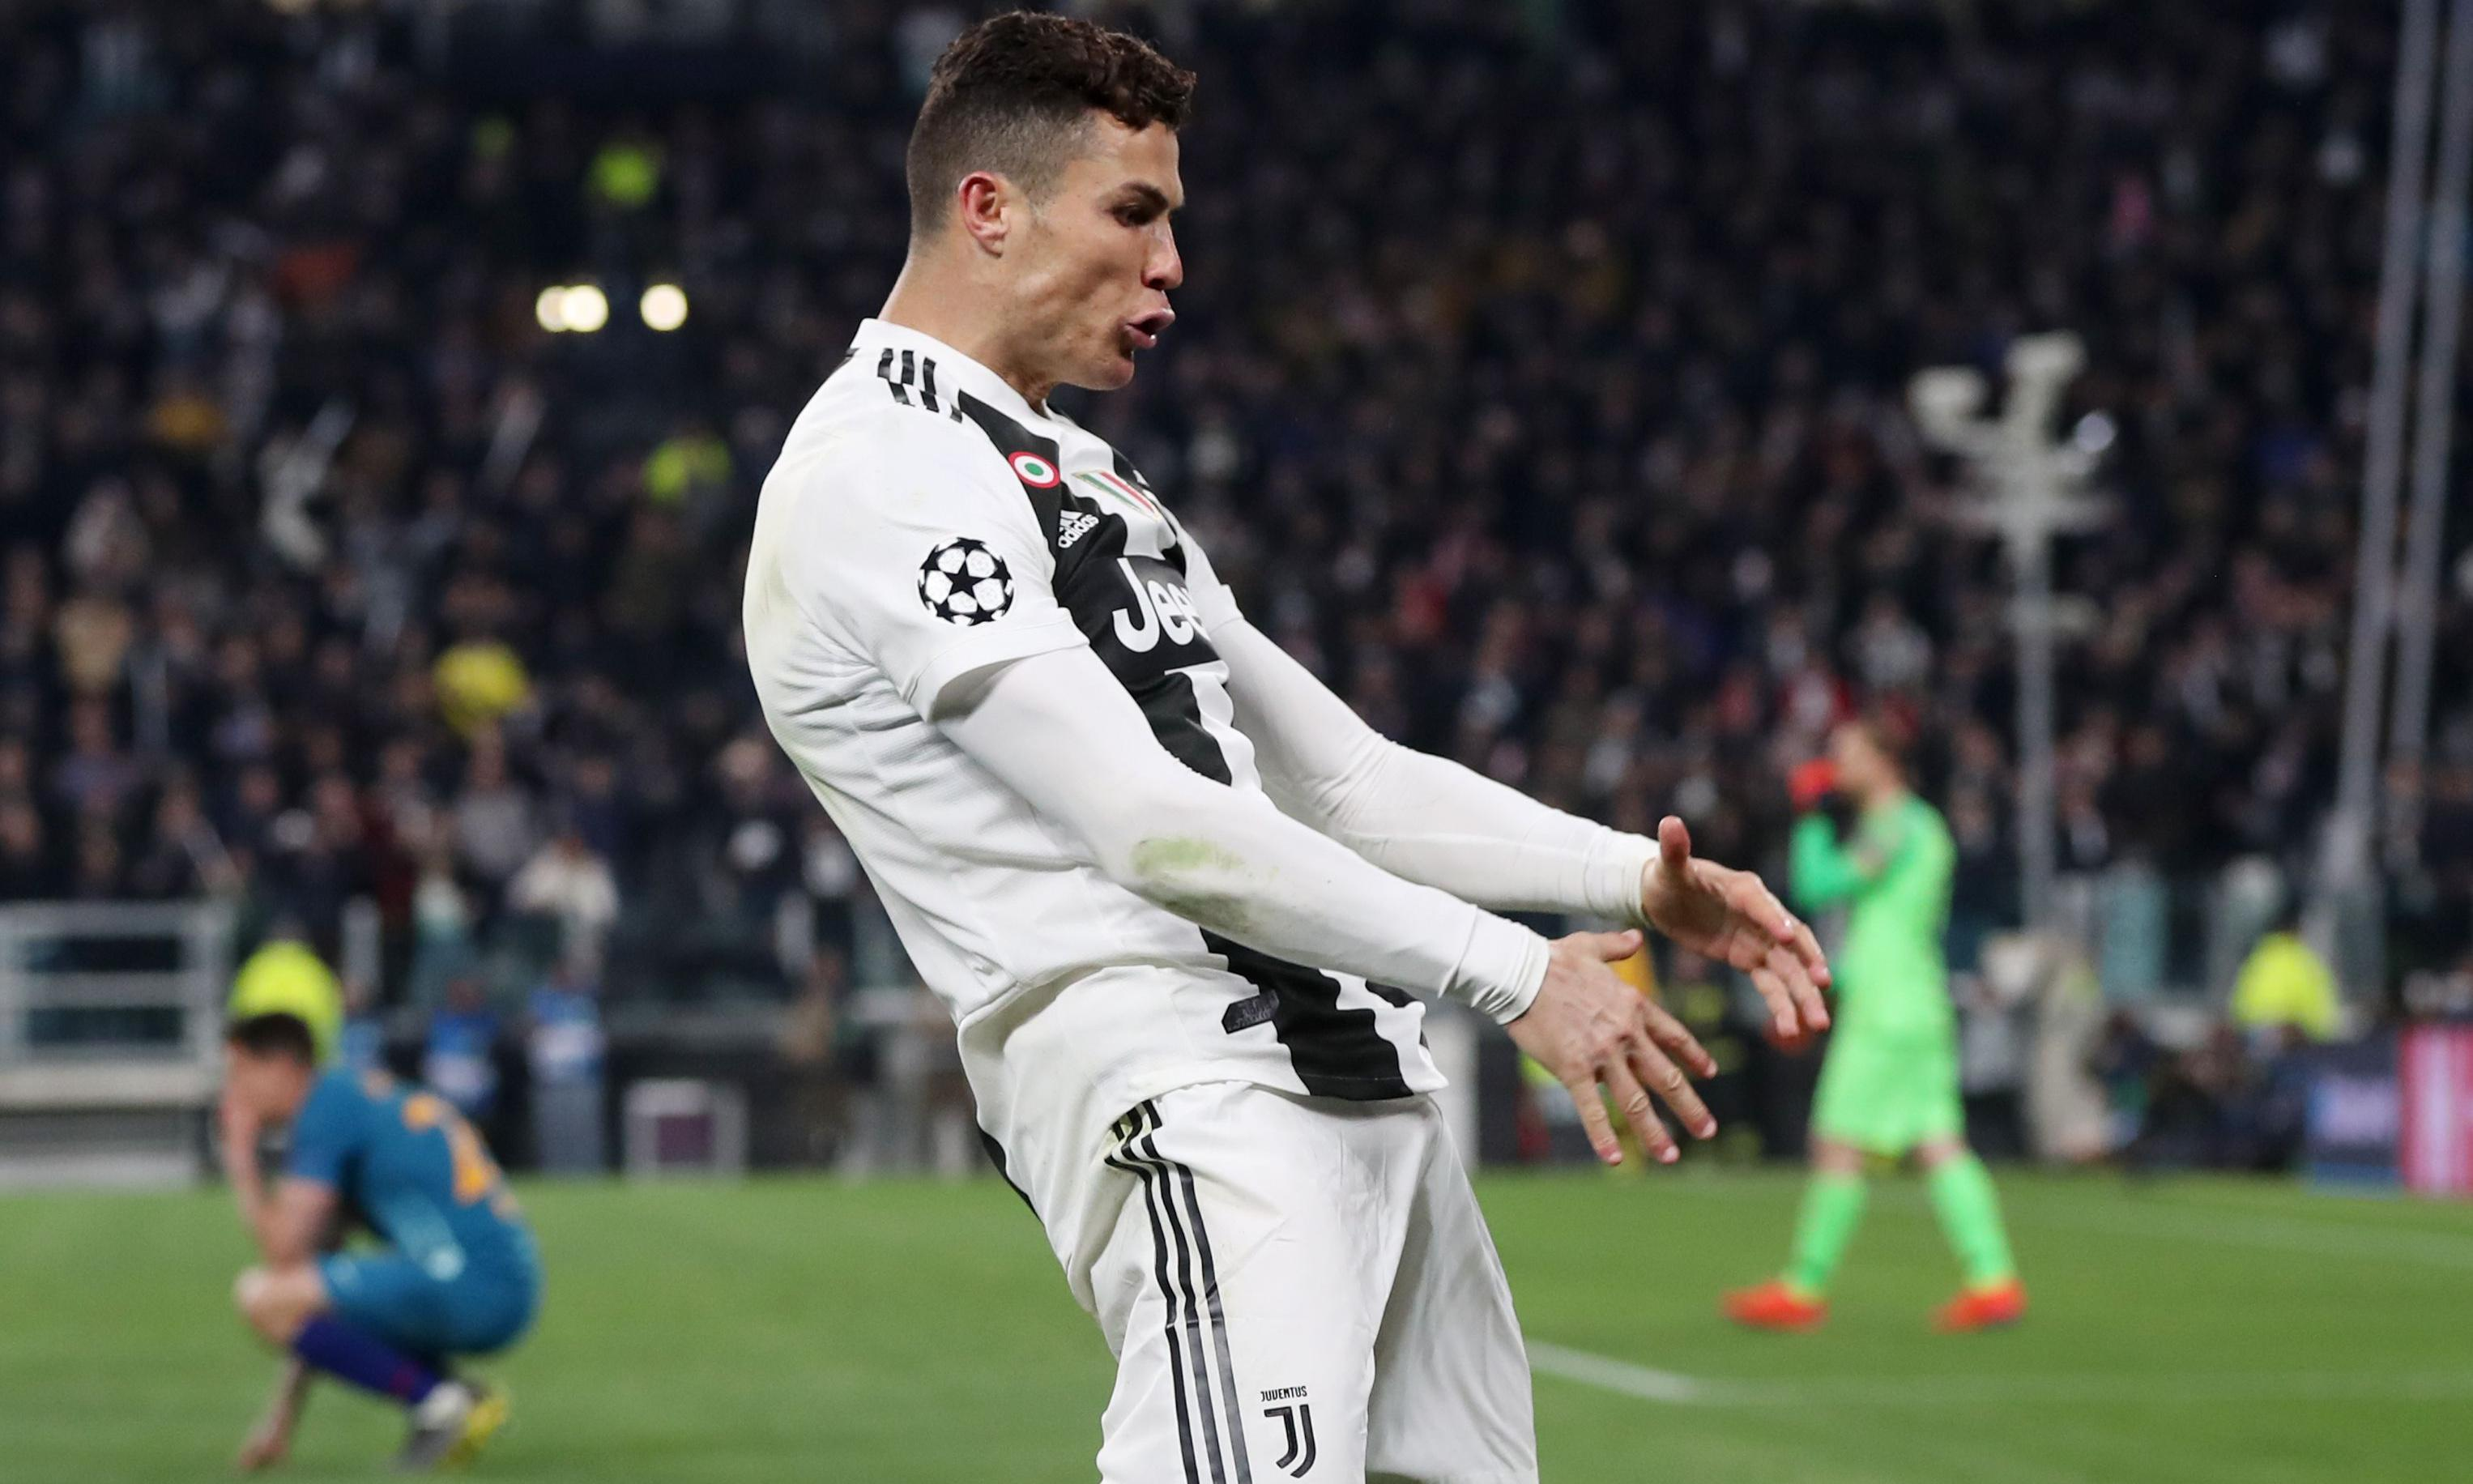 Cristiano Ronaldo charged with improper conduct for Atlético celebration